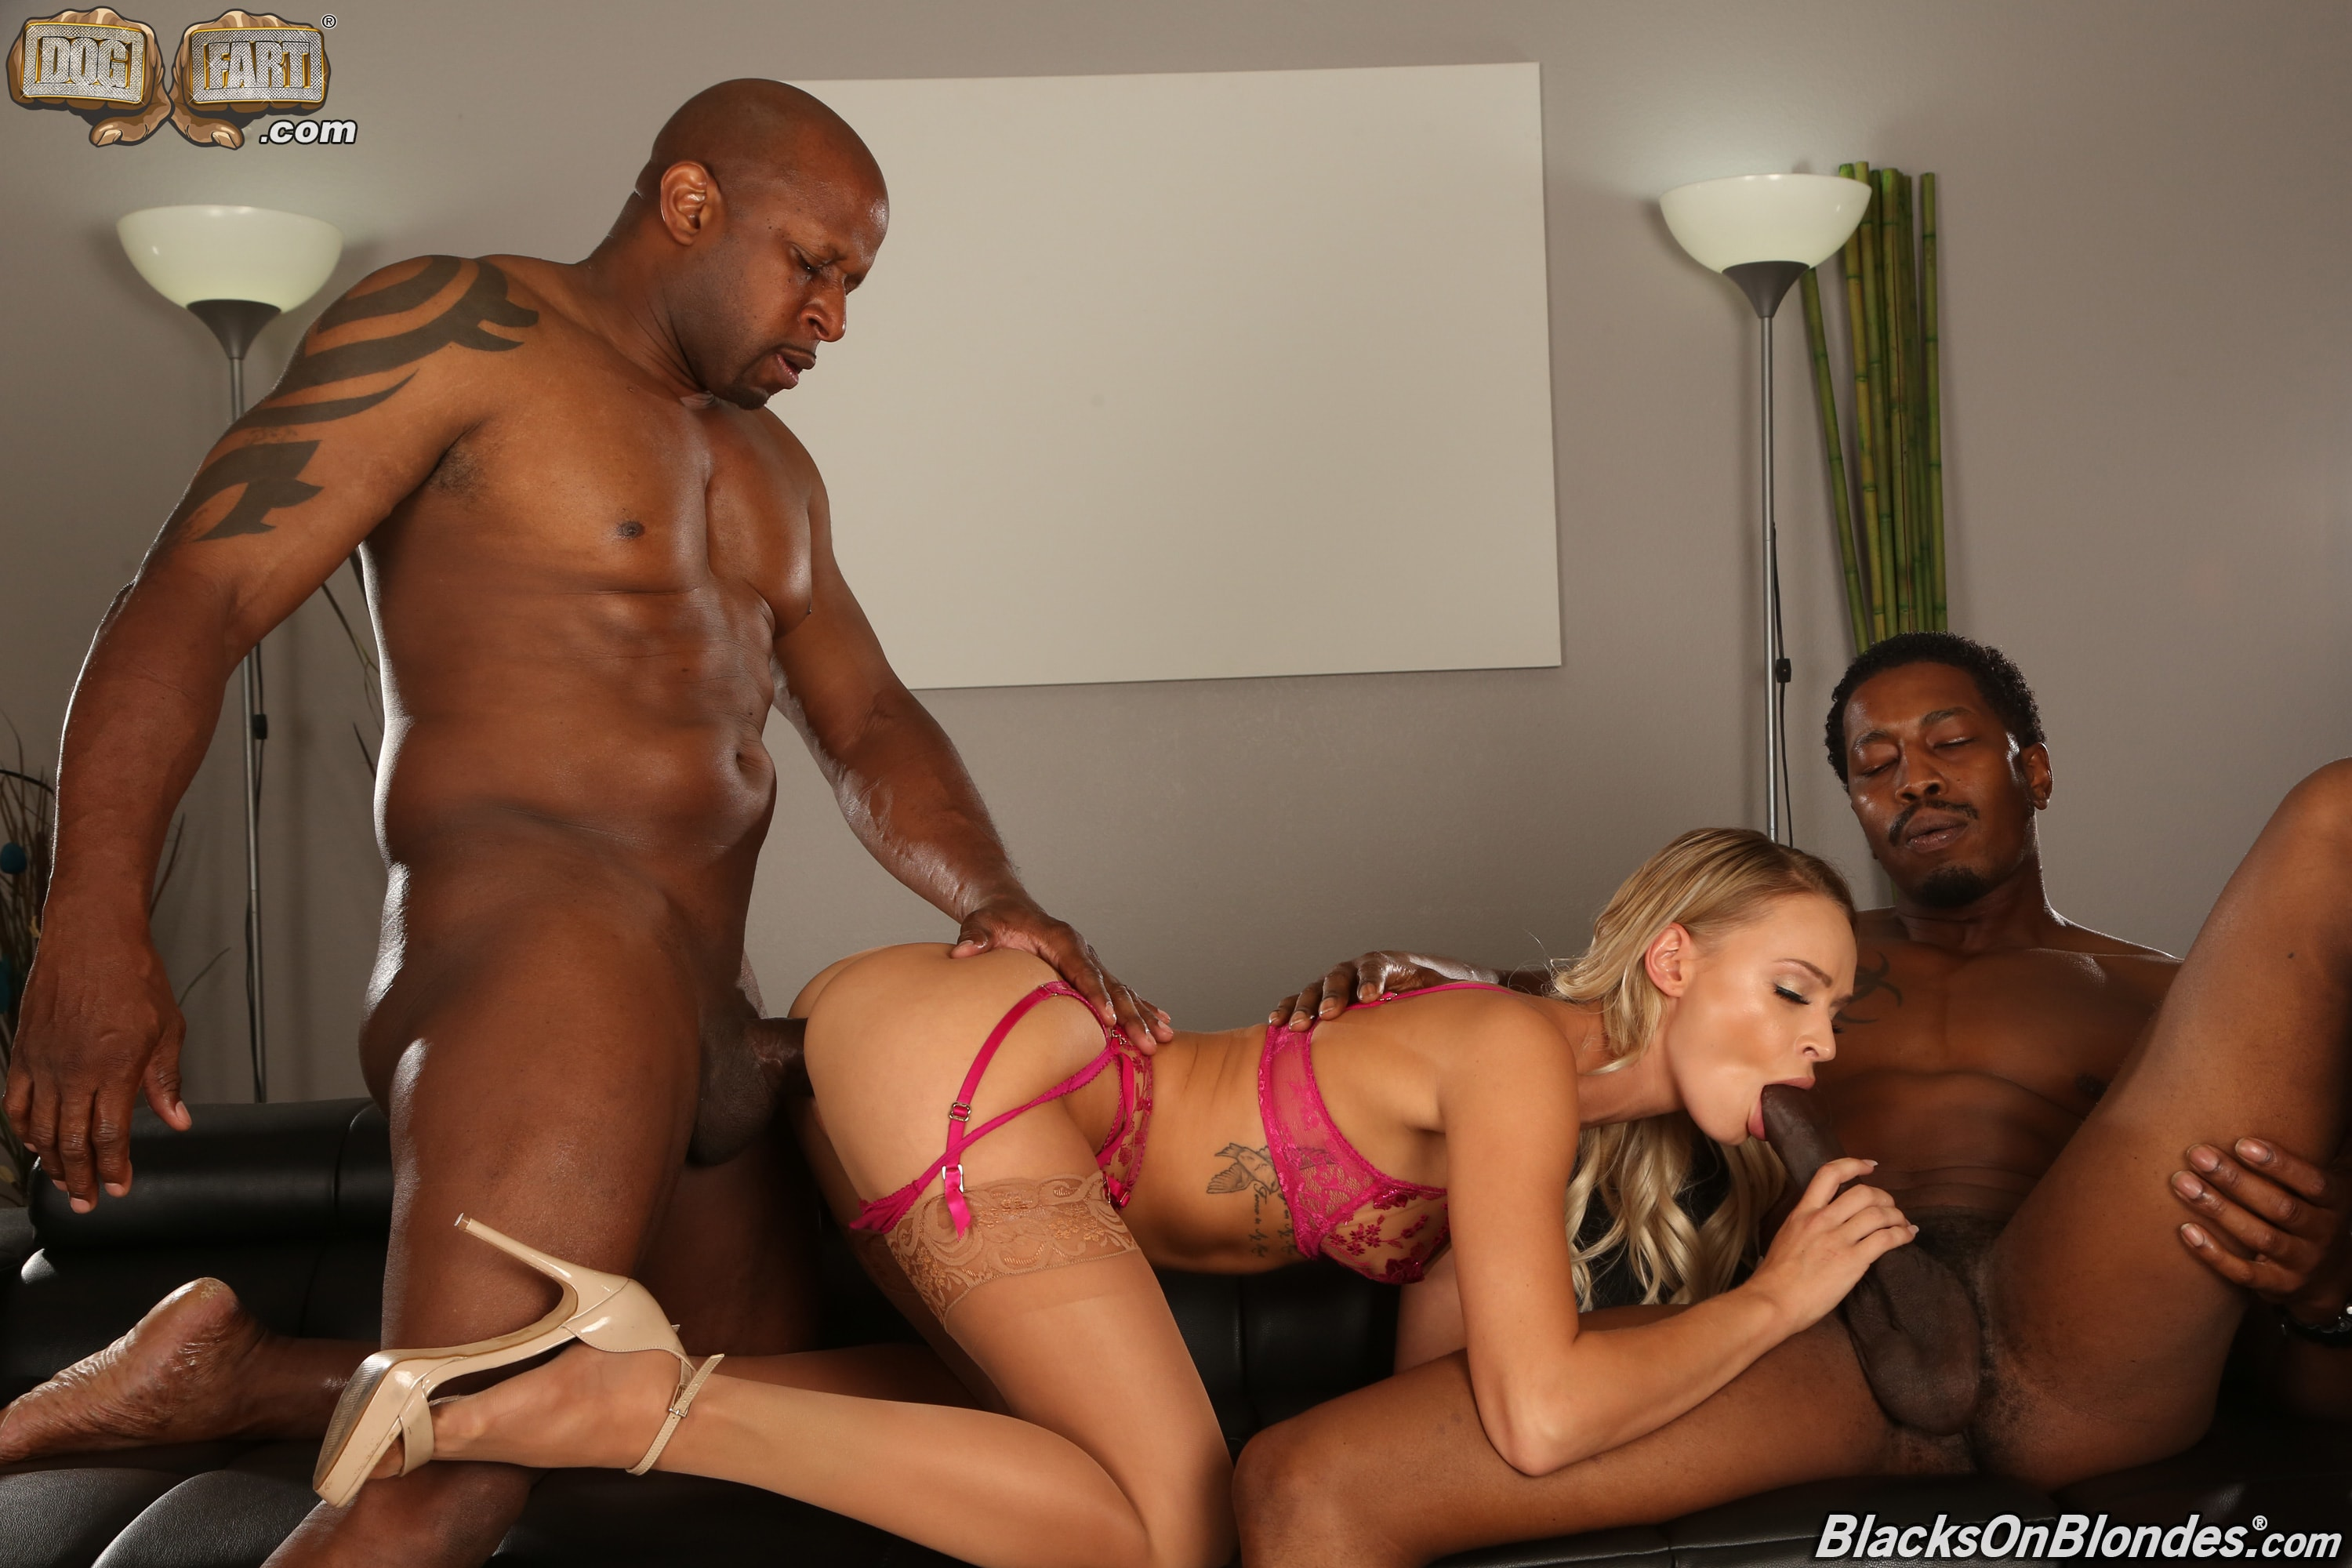 Dogfart '- Blacks On Blondes - Scene 3' starring Emma Hix (Photo 11)